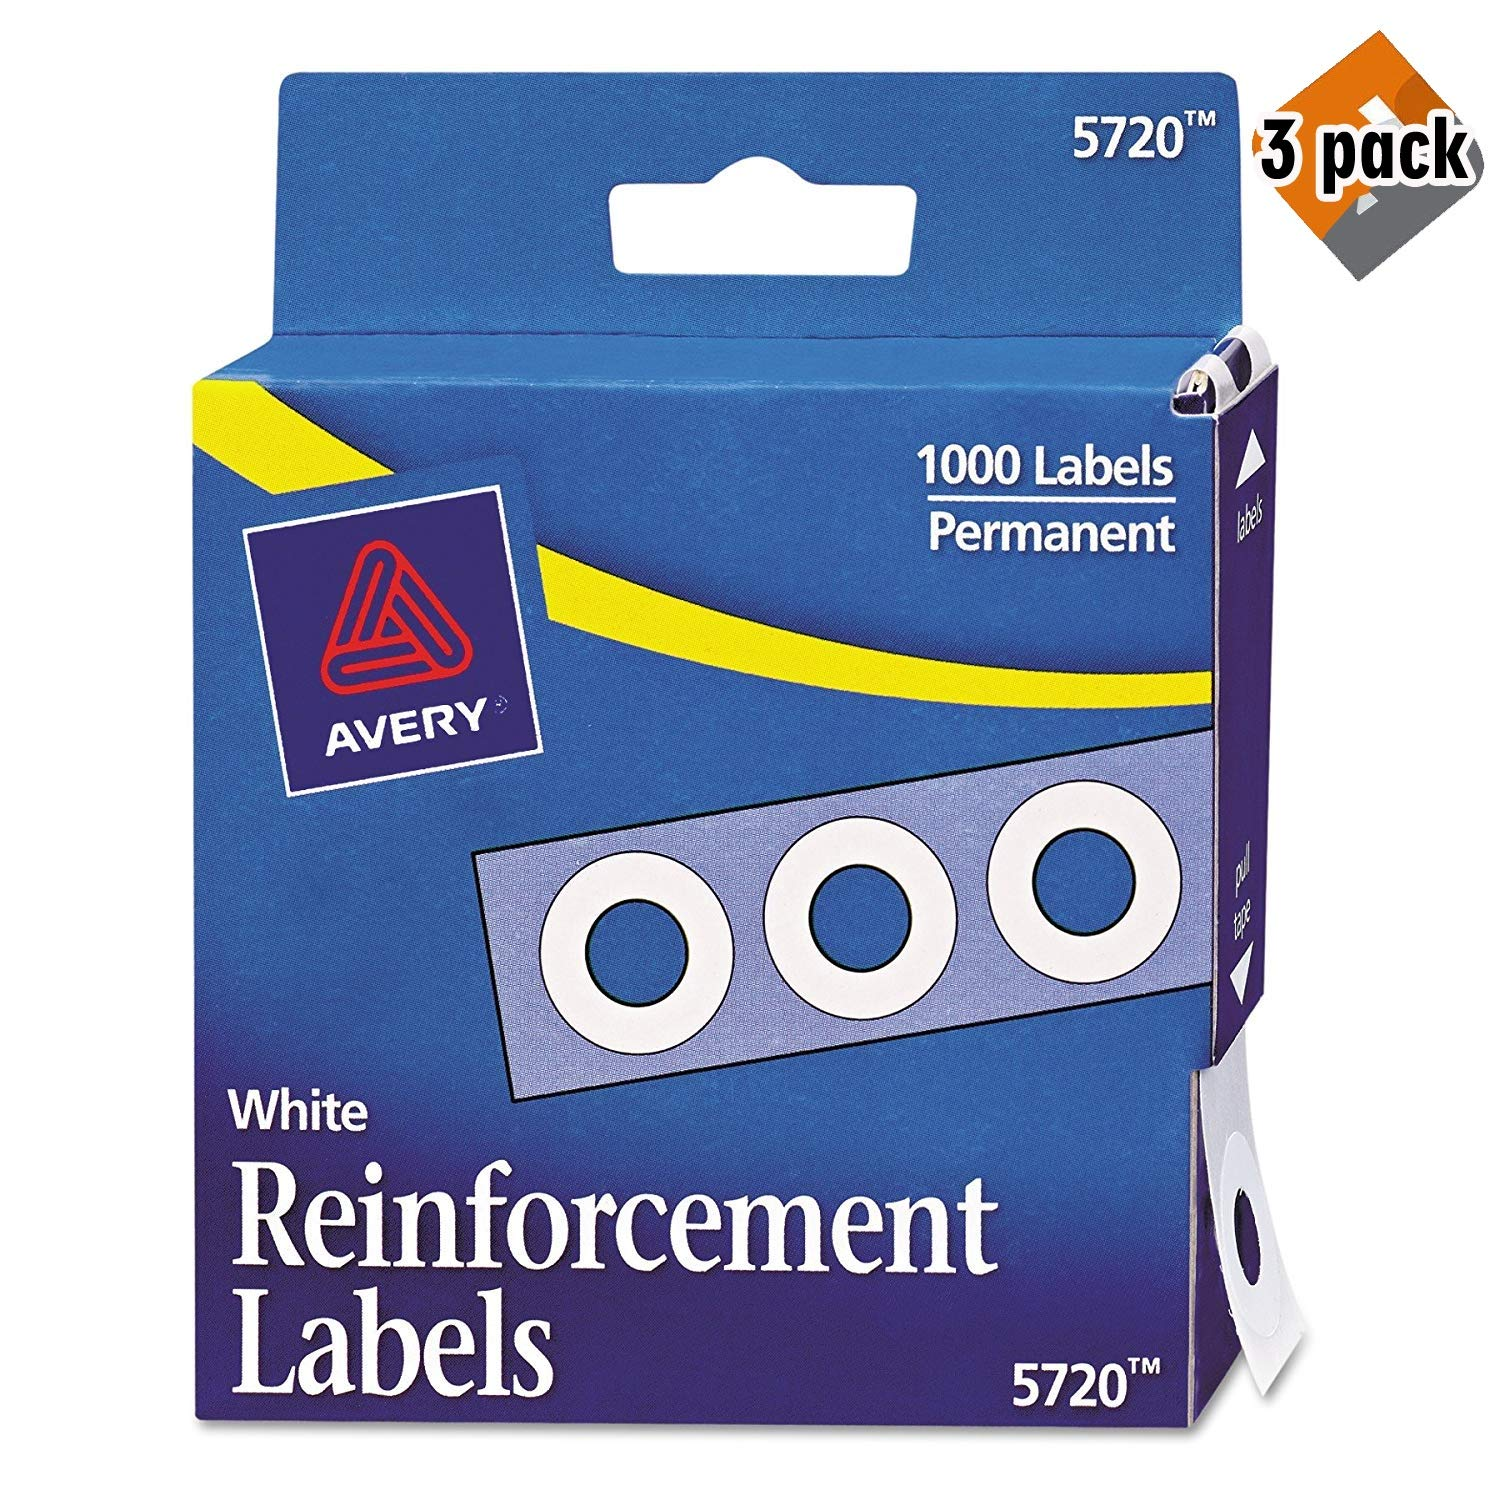 Avery Hole Reinforcements, White, 1000/Pack, PK - AVE05720, 3 Pack by AVERY